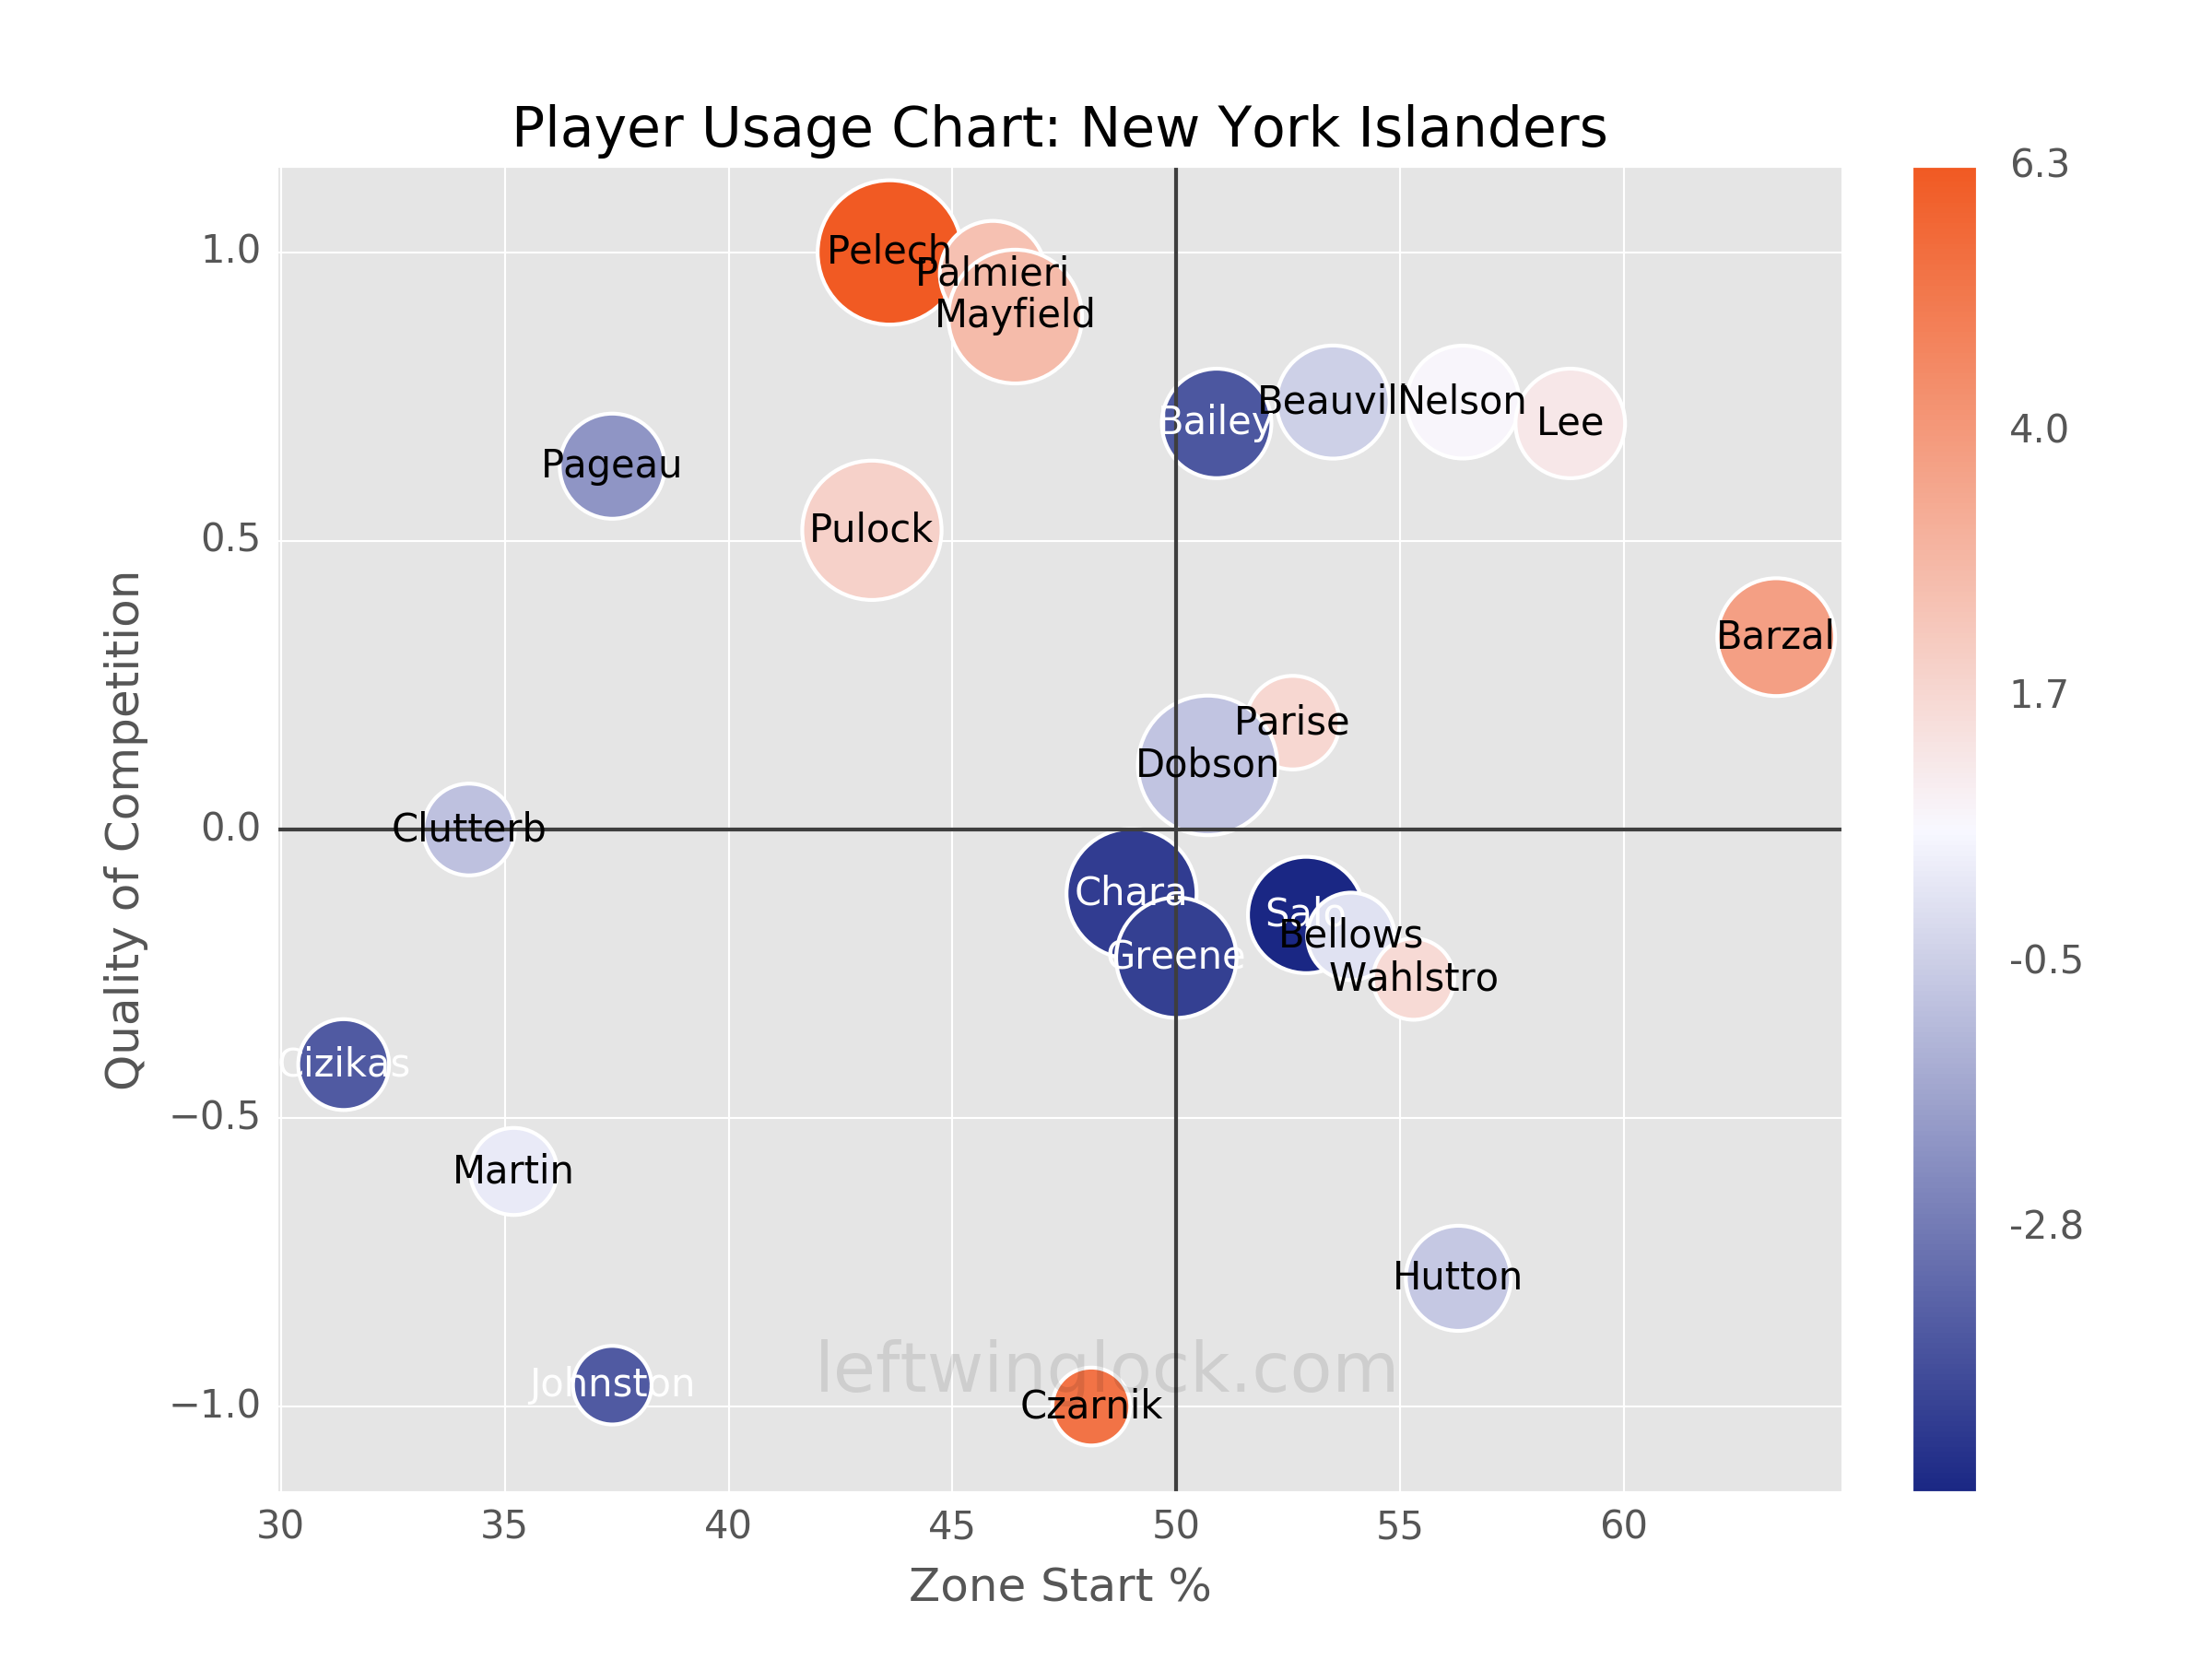 New York Islanders Player Usage Chart